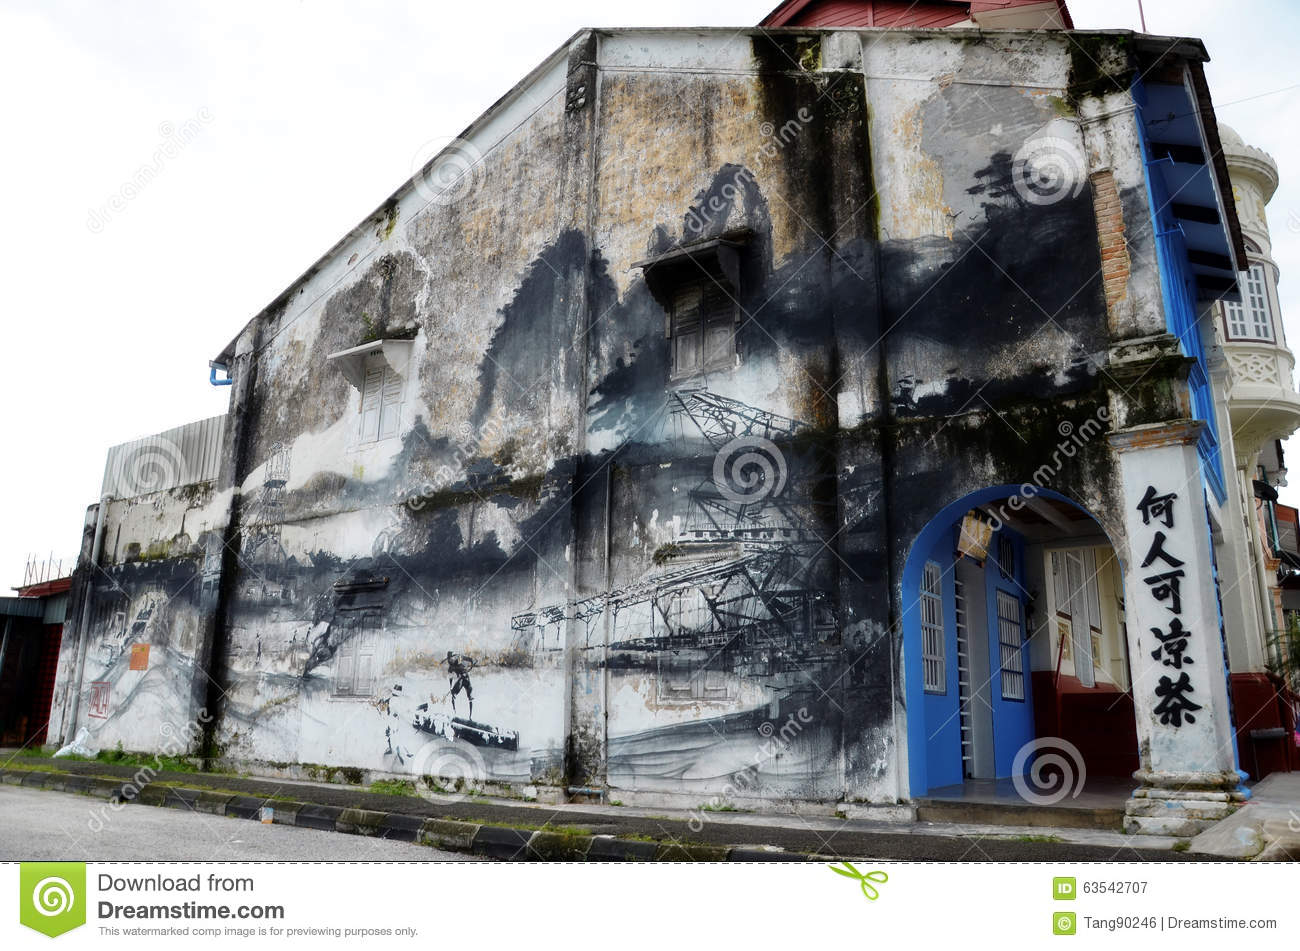 Ipoh malaysia 23 nov 2015 evolution wall art painted by famous artist ernest zacharevic in ipoh this chinese style painted mural shows ipoh evolution